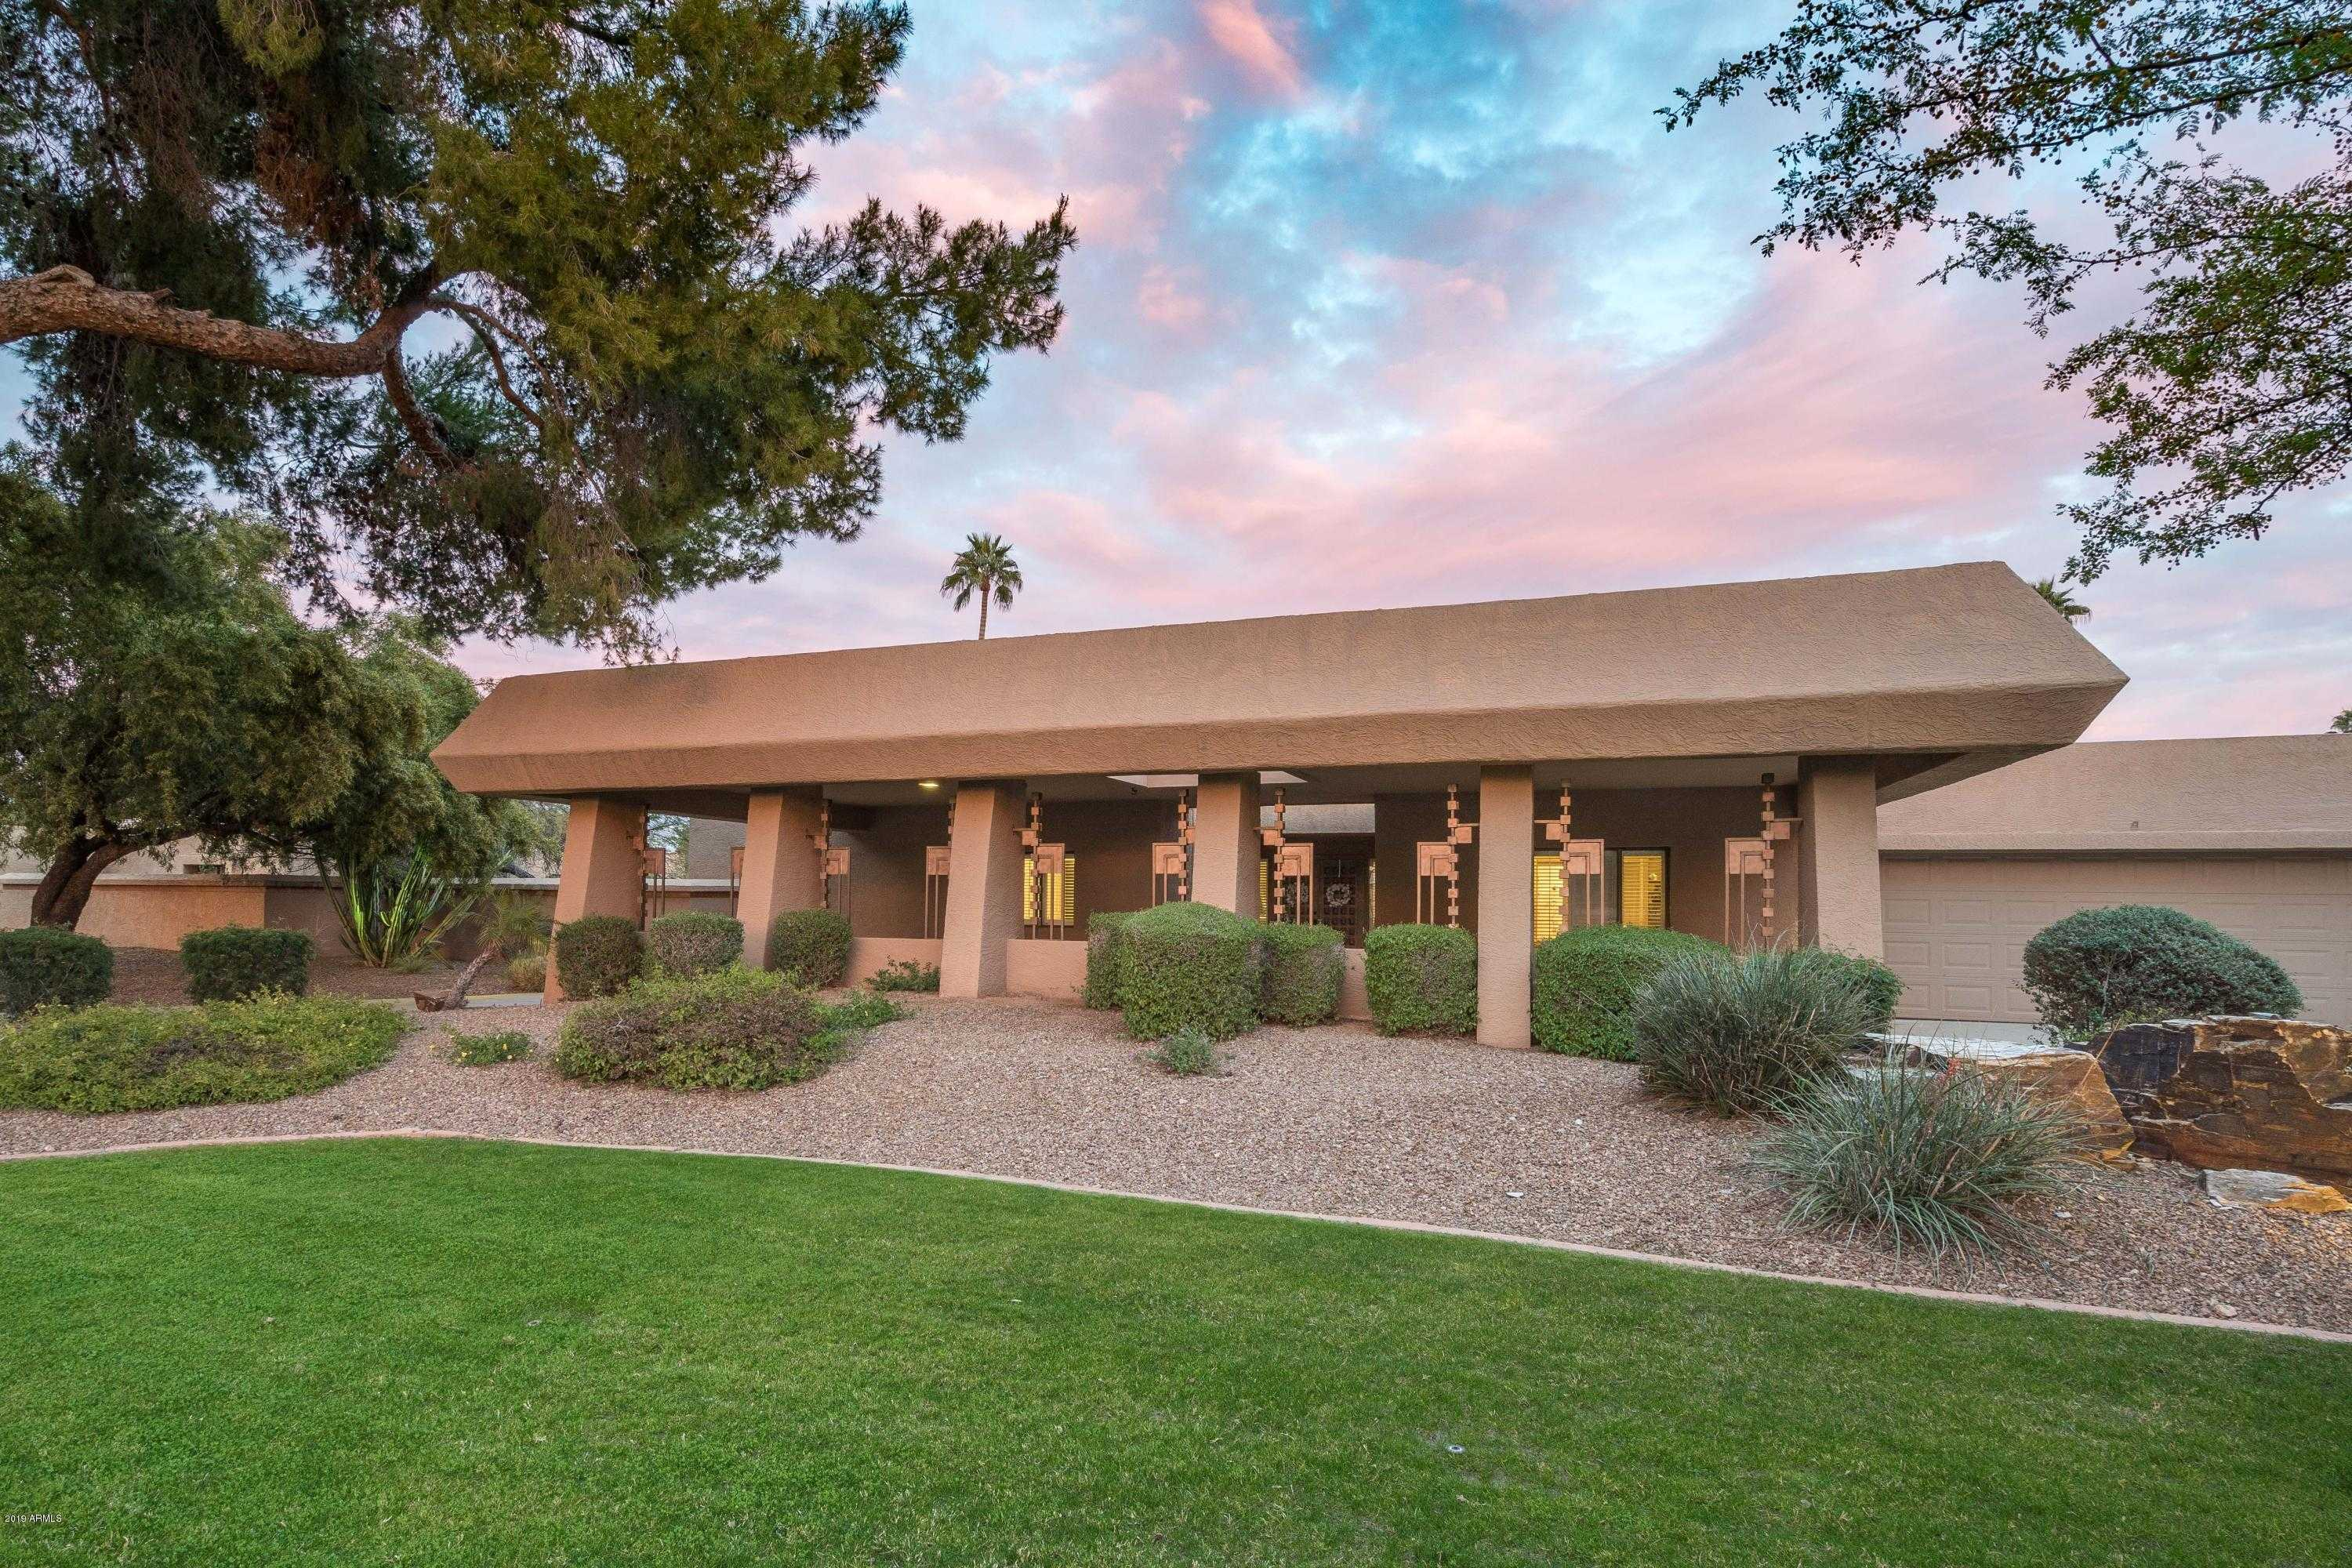 $800,000 - 3Br/3Ba - Home for Sale in Mountain View Estates Replat, Paradise Valley